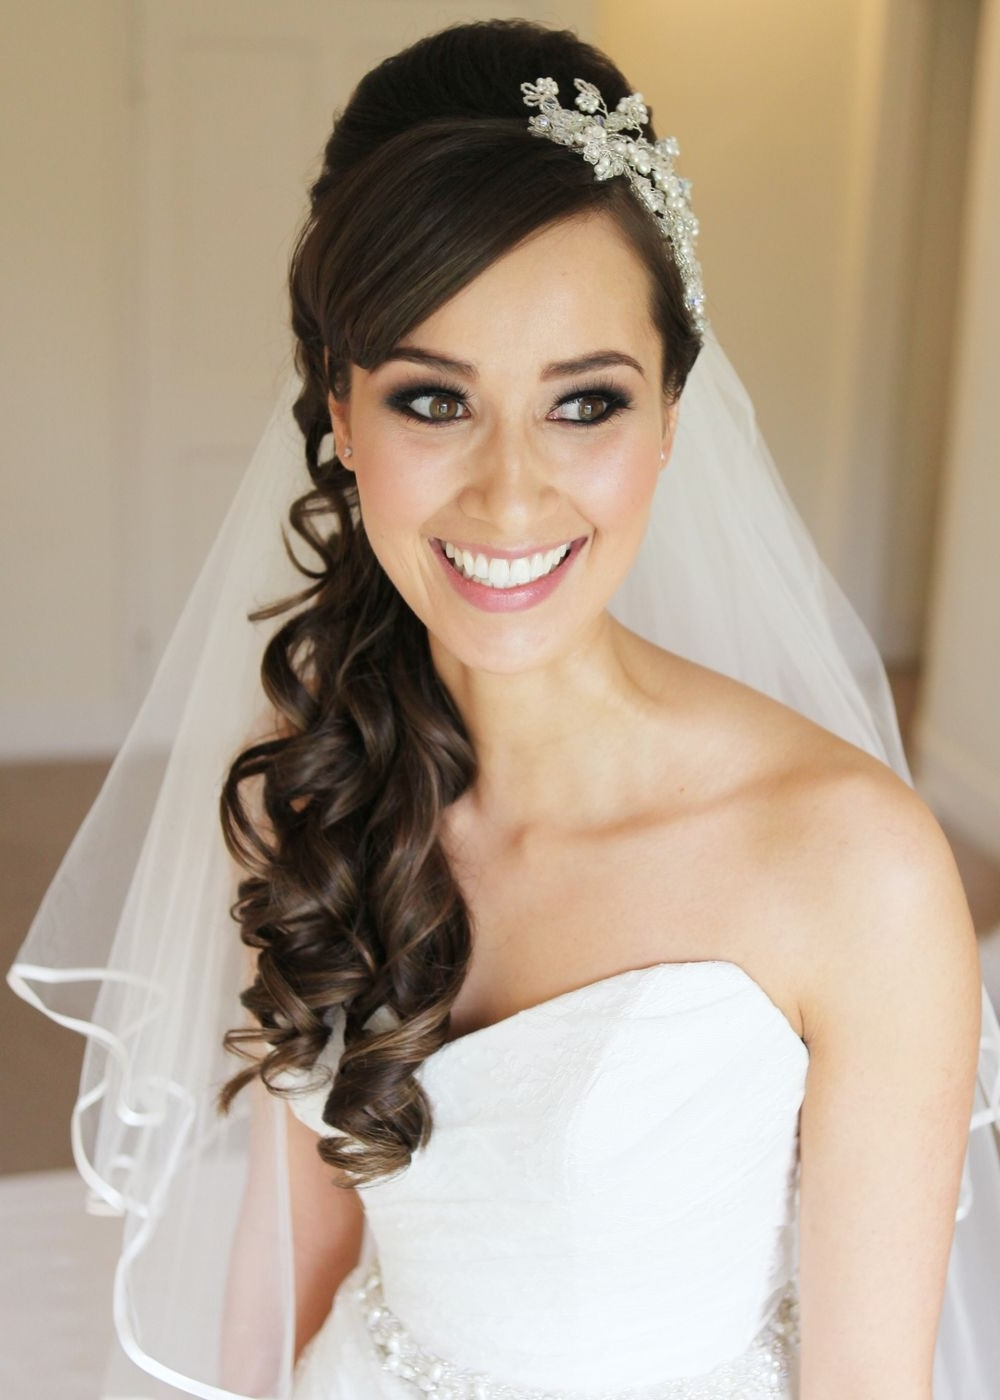 Fashionable Half Up Half Down With Fringe Wedding Hairstyles Regarding 15 Fabulous Half Up Half Down Wedding Hairstyles (View 6 of 15)